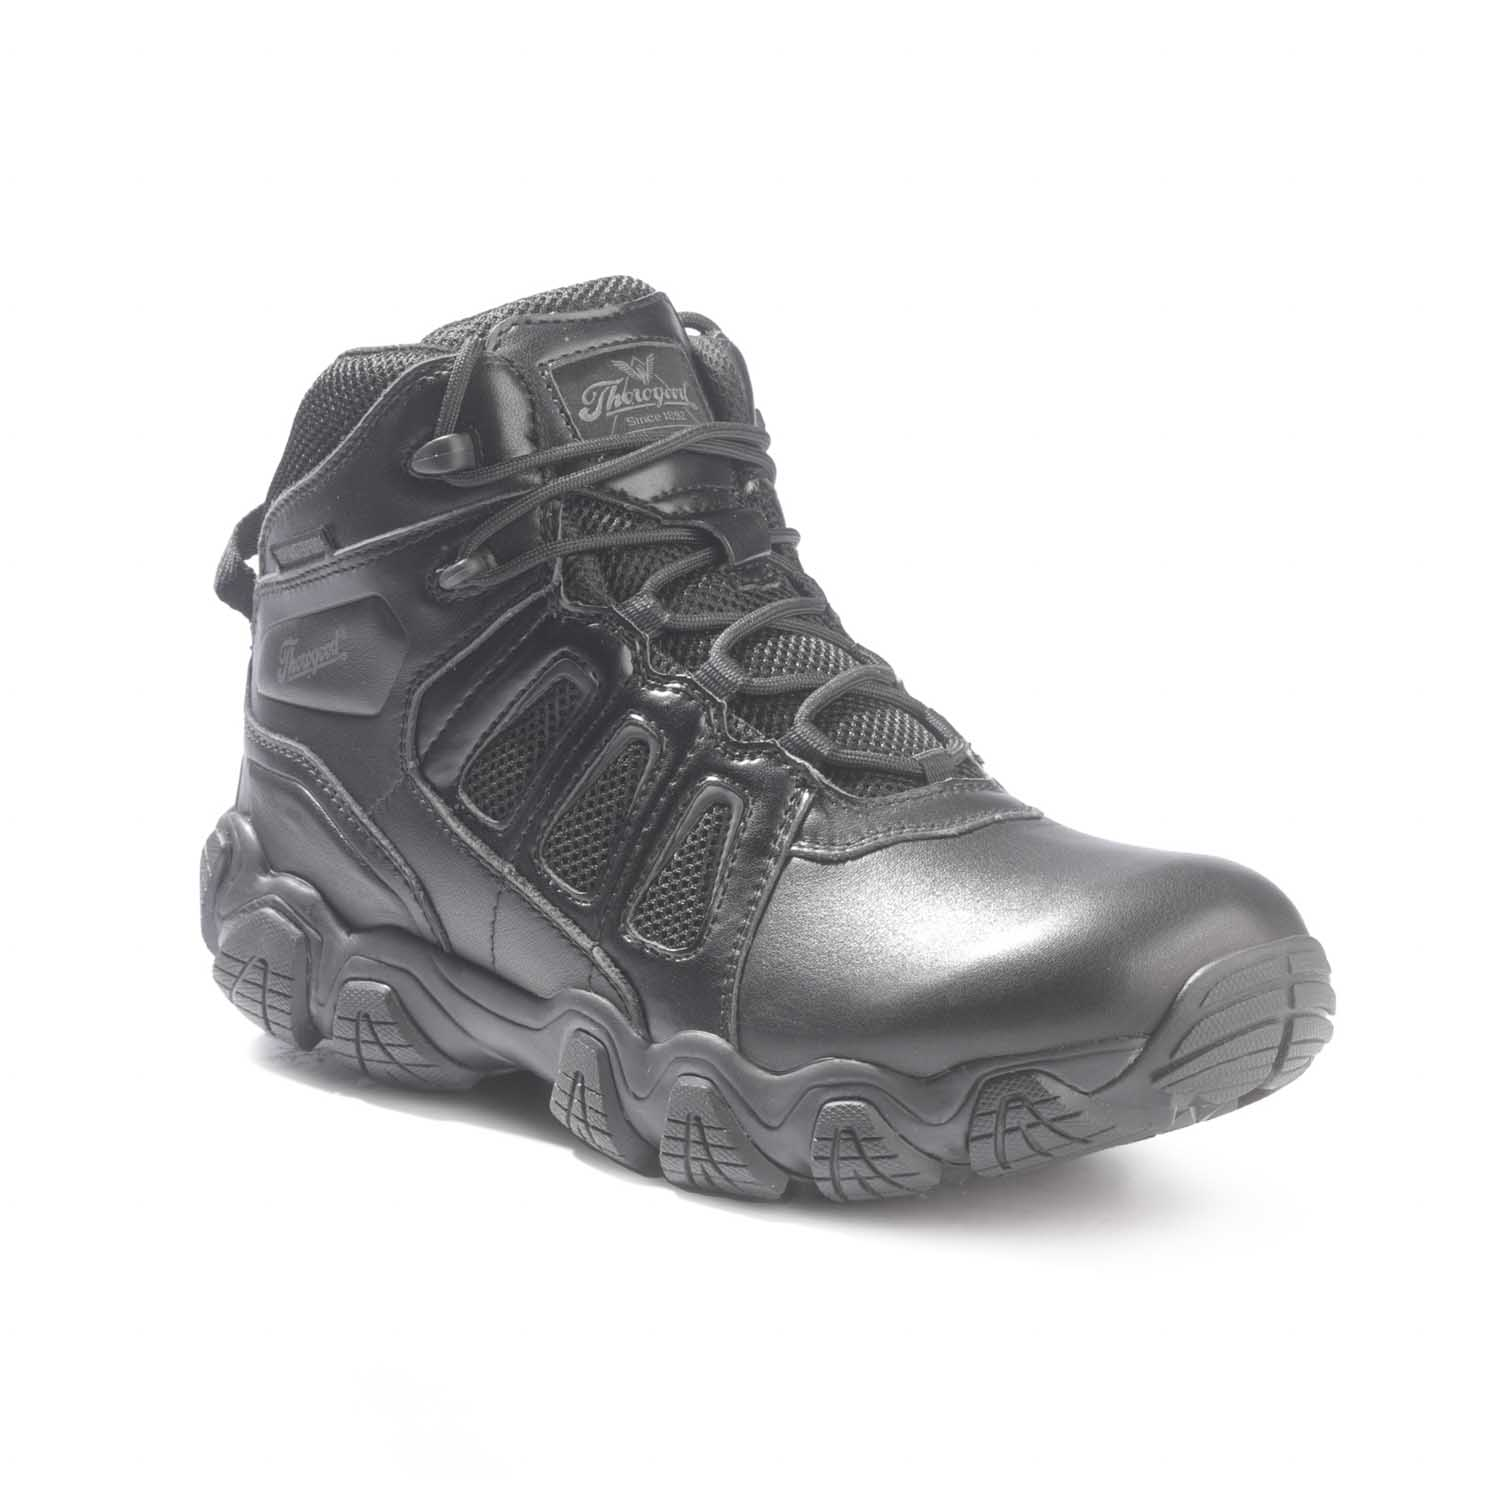 "Thorogood 6"" Crosstrex Waterproof Safety Boot w/ Polishable"